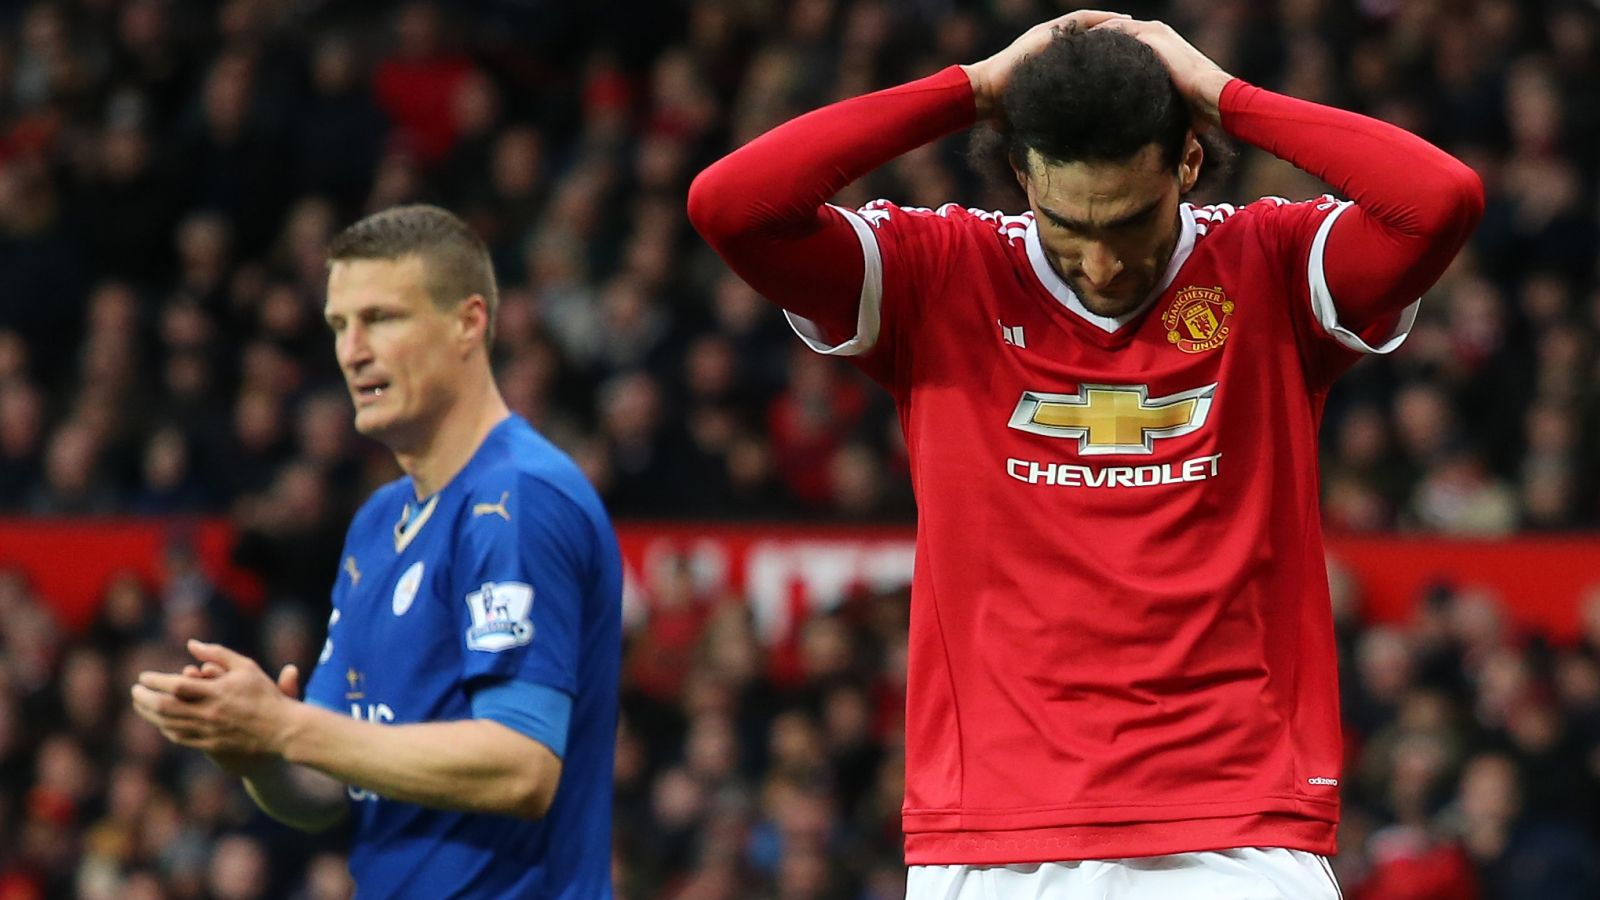 Fellaini, Huth charged after clashing during EPL game